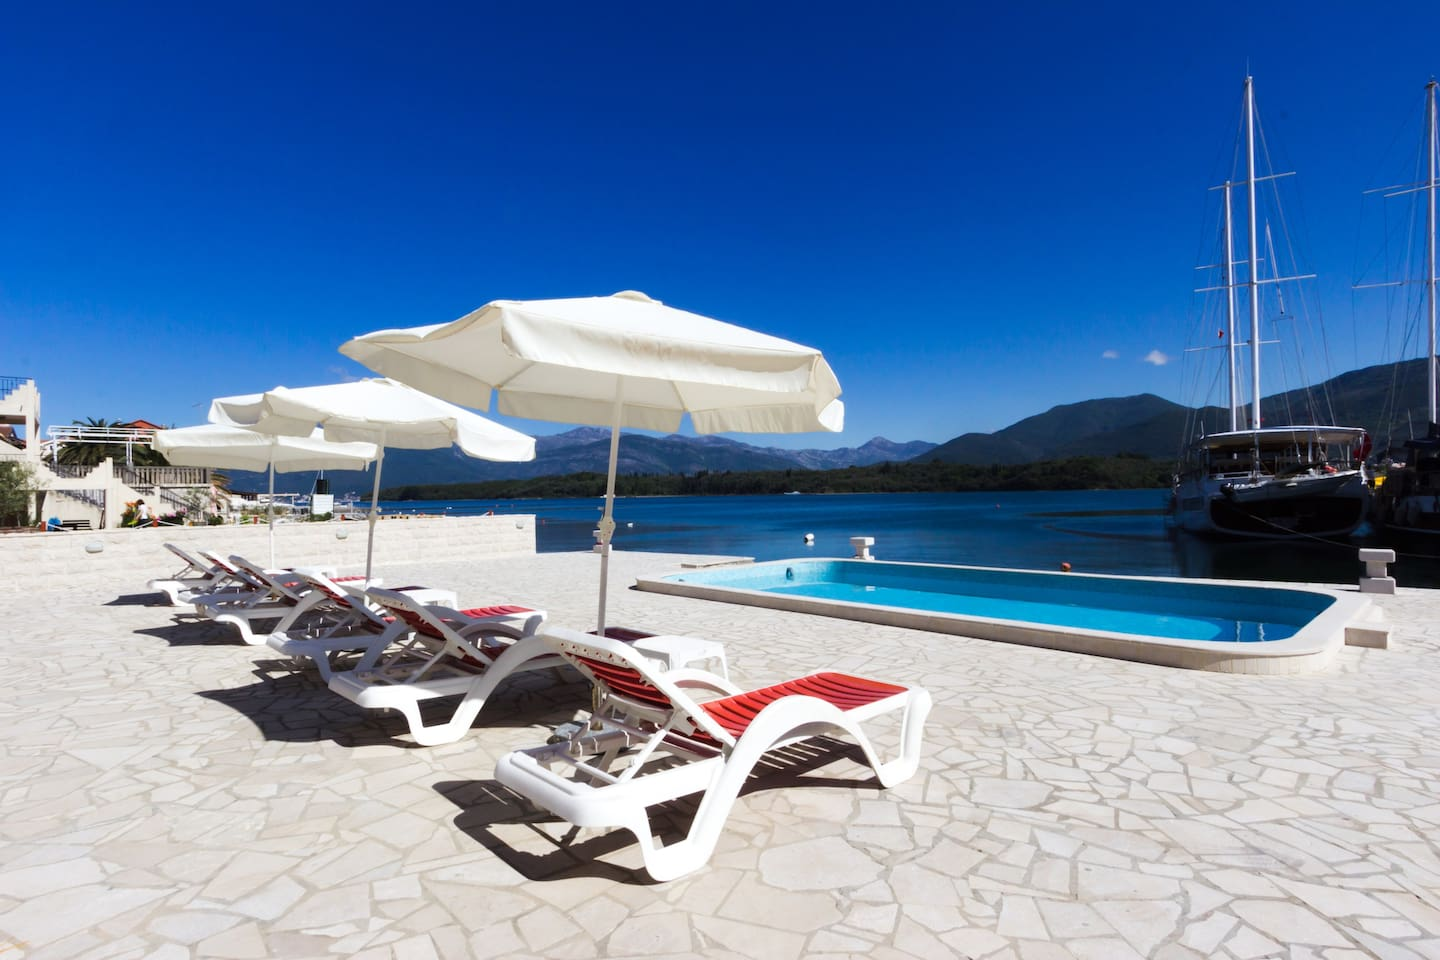 You can pick your own place to rest and relax near the swimming pool pool and beautiful Adriatic Sea!